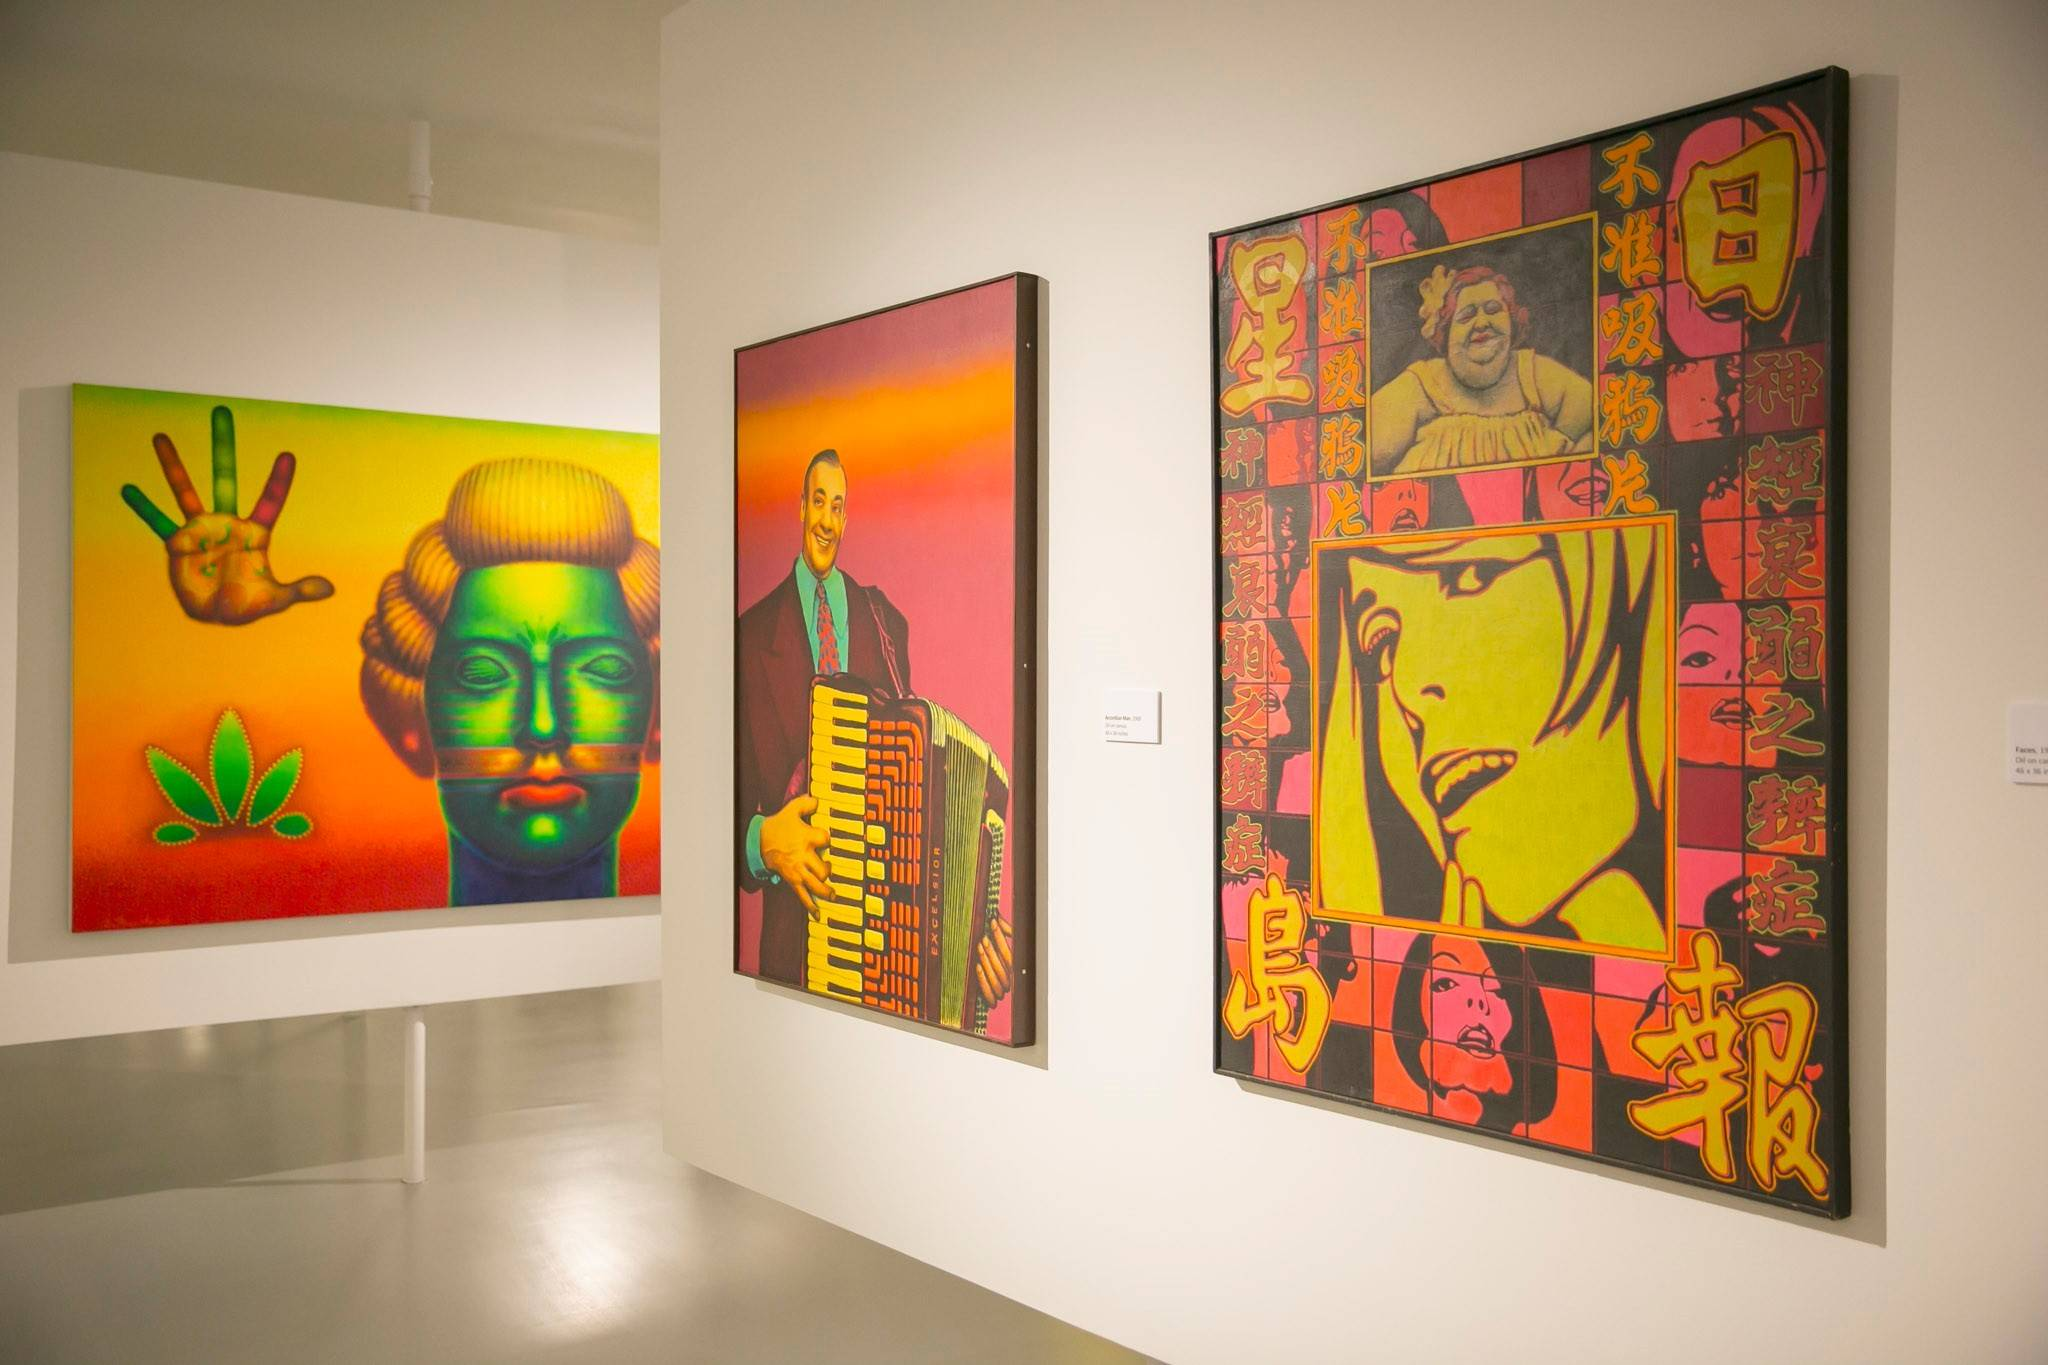 Visit the newly opened Ed Paschke Art Center in Chicago's Jefferson Park neighborhood.